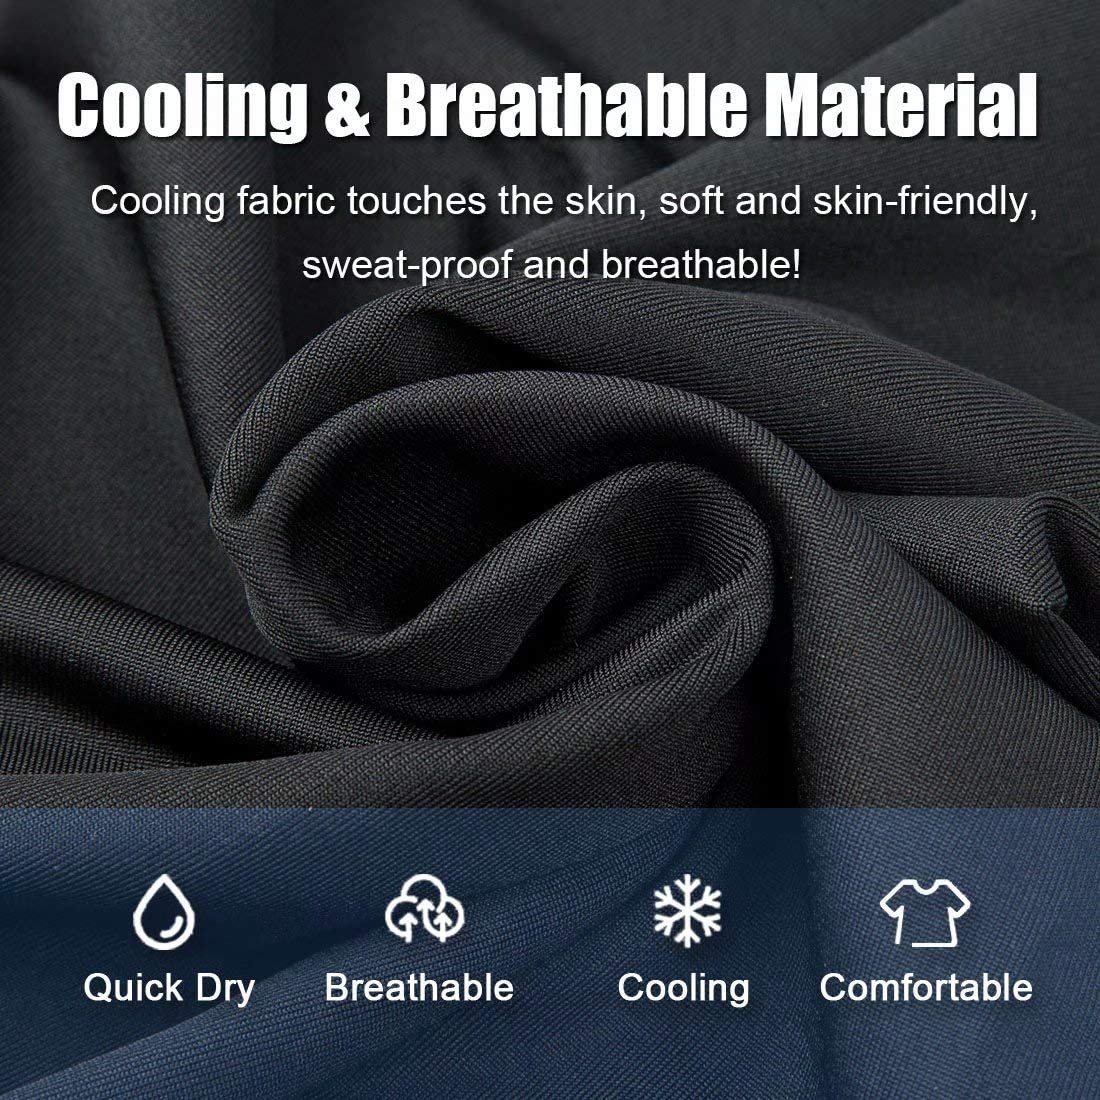 [6 Pack] Unisex Sun UV Protection Face Bandana, Reusable Washable Fabric Cloth Half Mask Scarf for Cycling Motorcycle Hiking, Breathable Neck Gaiter Balaclava Headwear for Men Women-4 at  Men's Clothing store